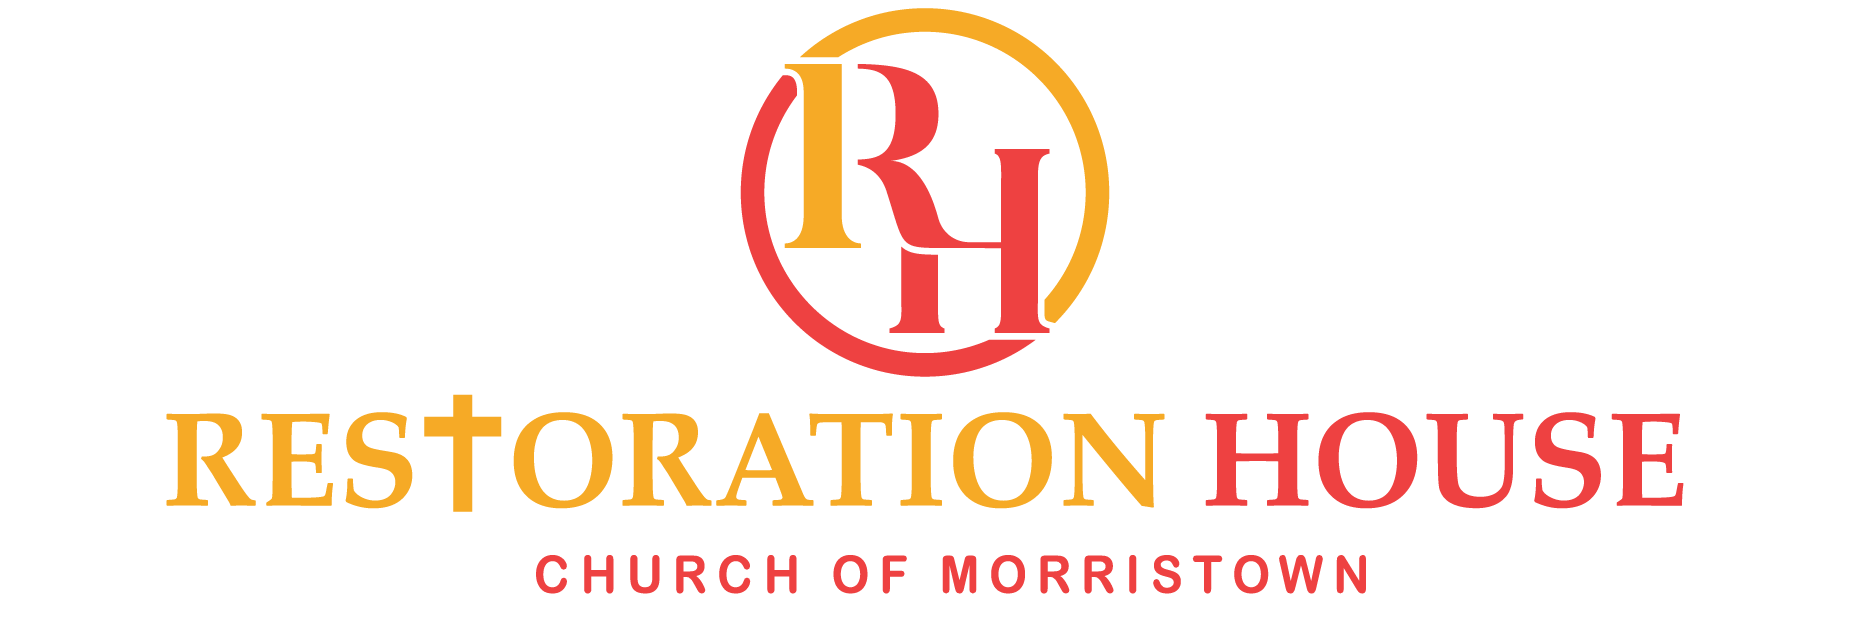 Foursquare Church in Morristown, NJ | Restoration House Foursquare Church